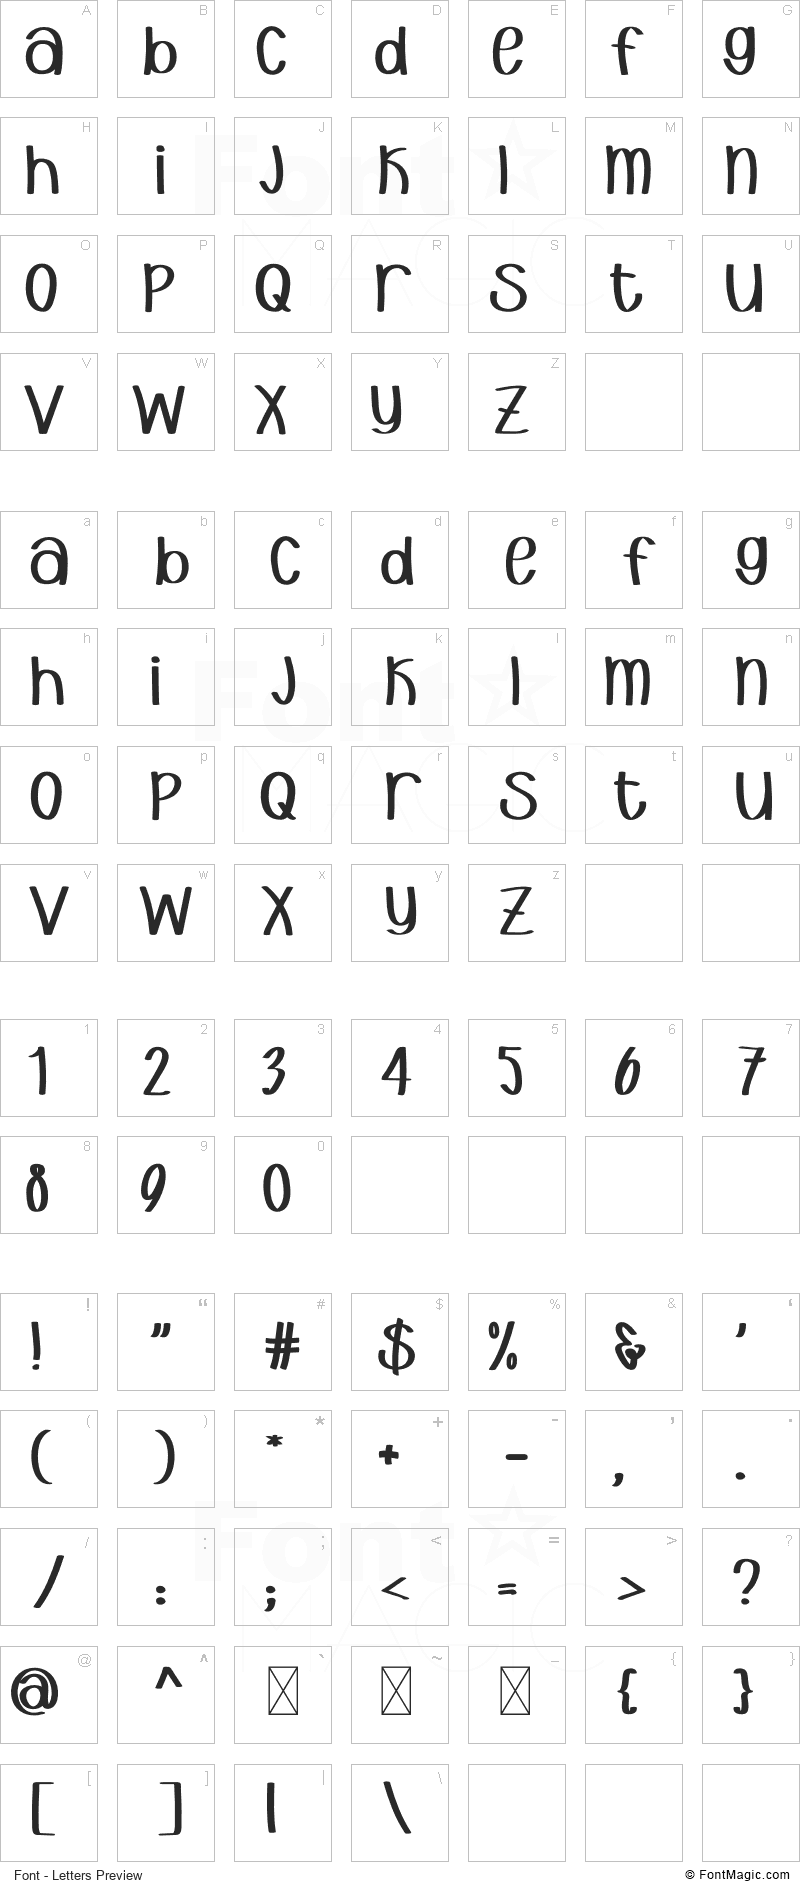 Endeavour Font - All Latters Preview Chart